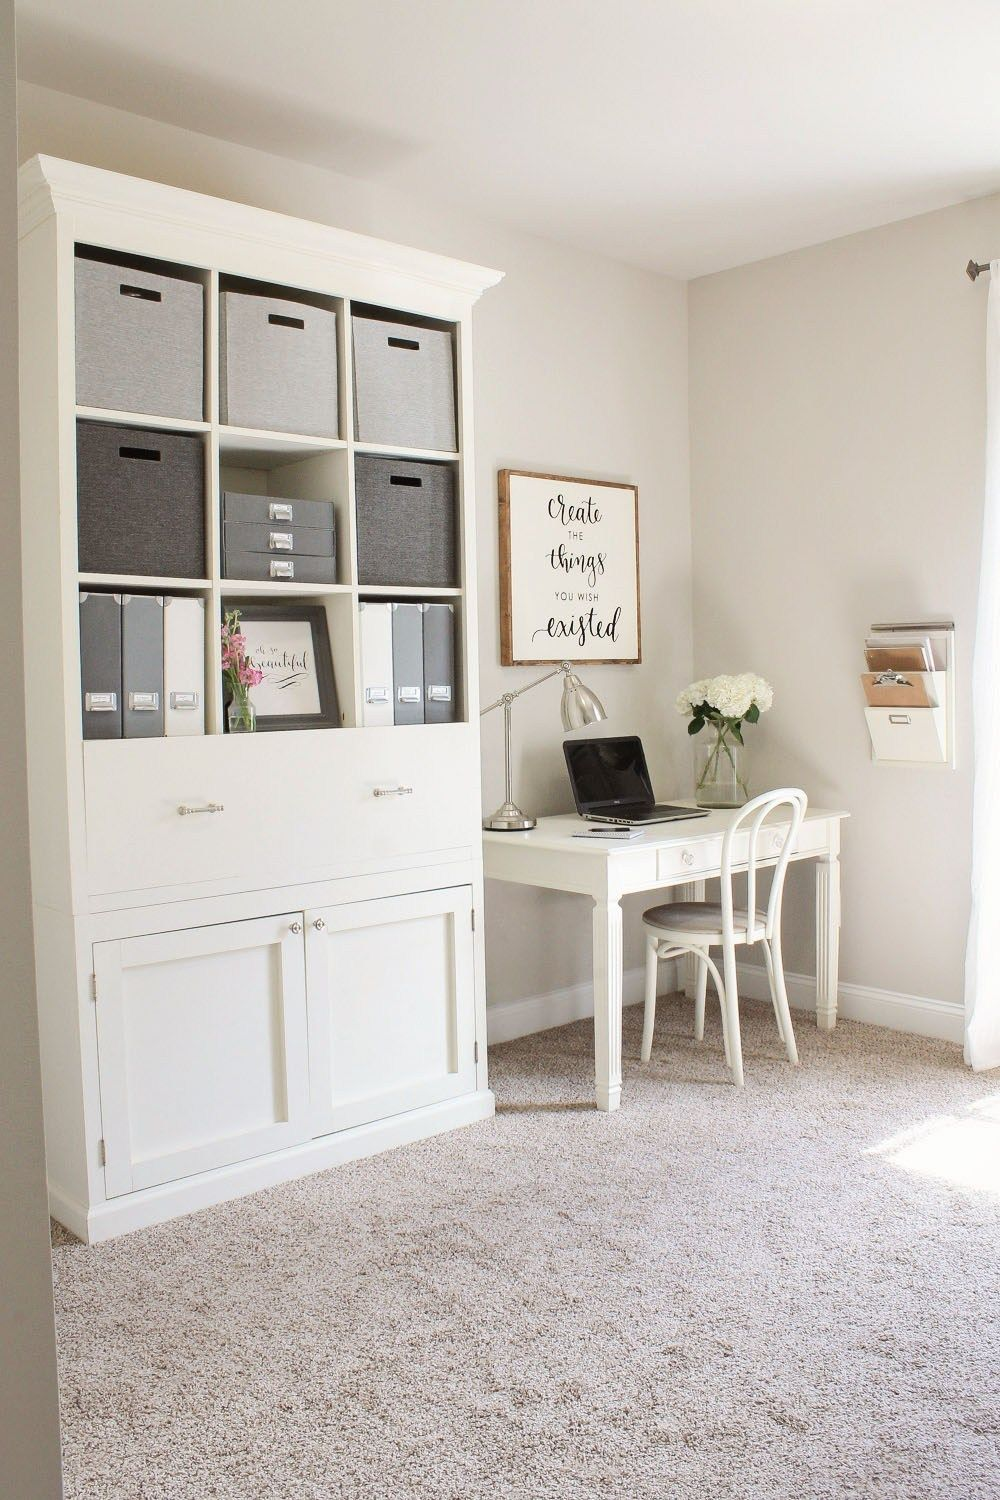 Ikea Home Office Library Ideas: Rustic Chic Home Office Reveal